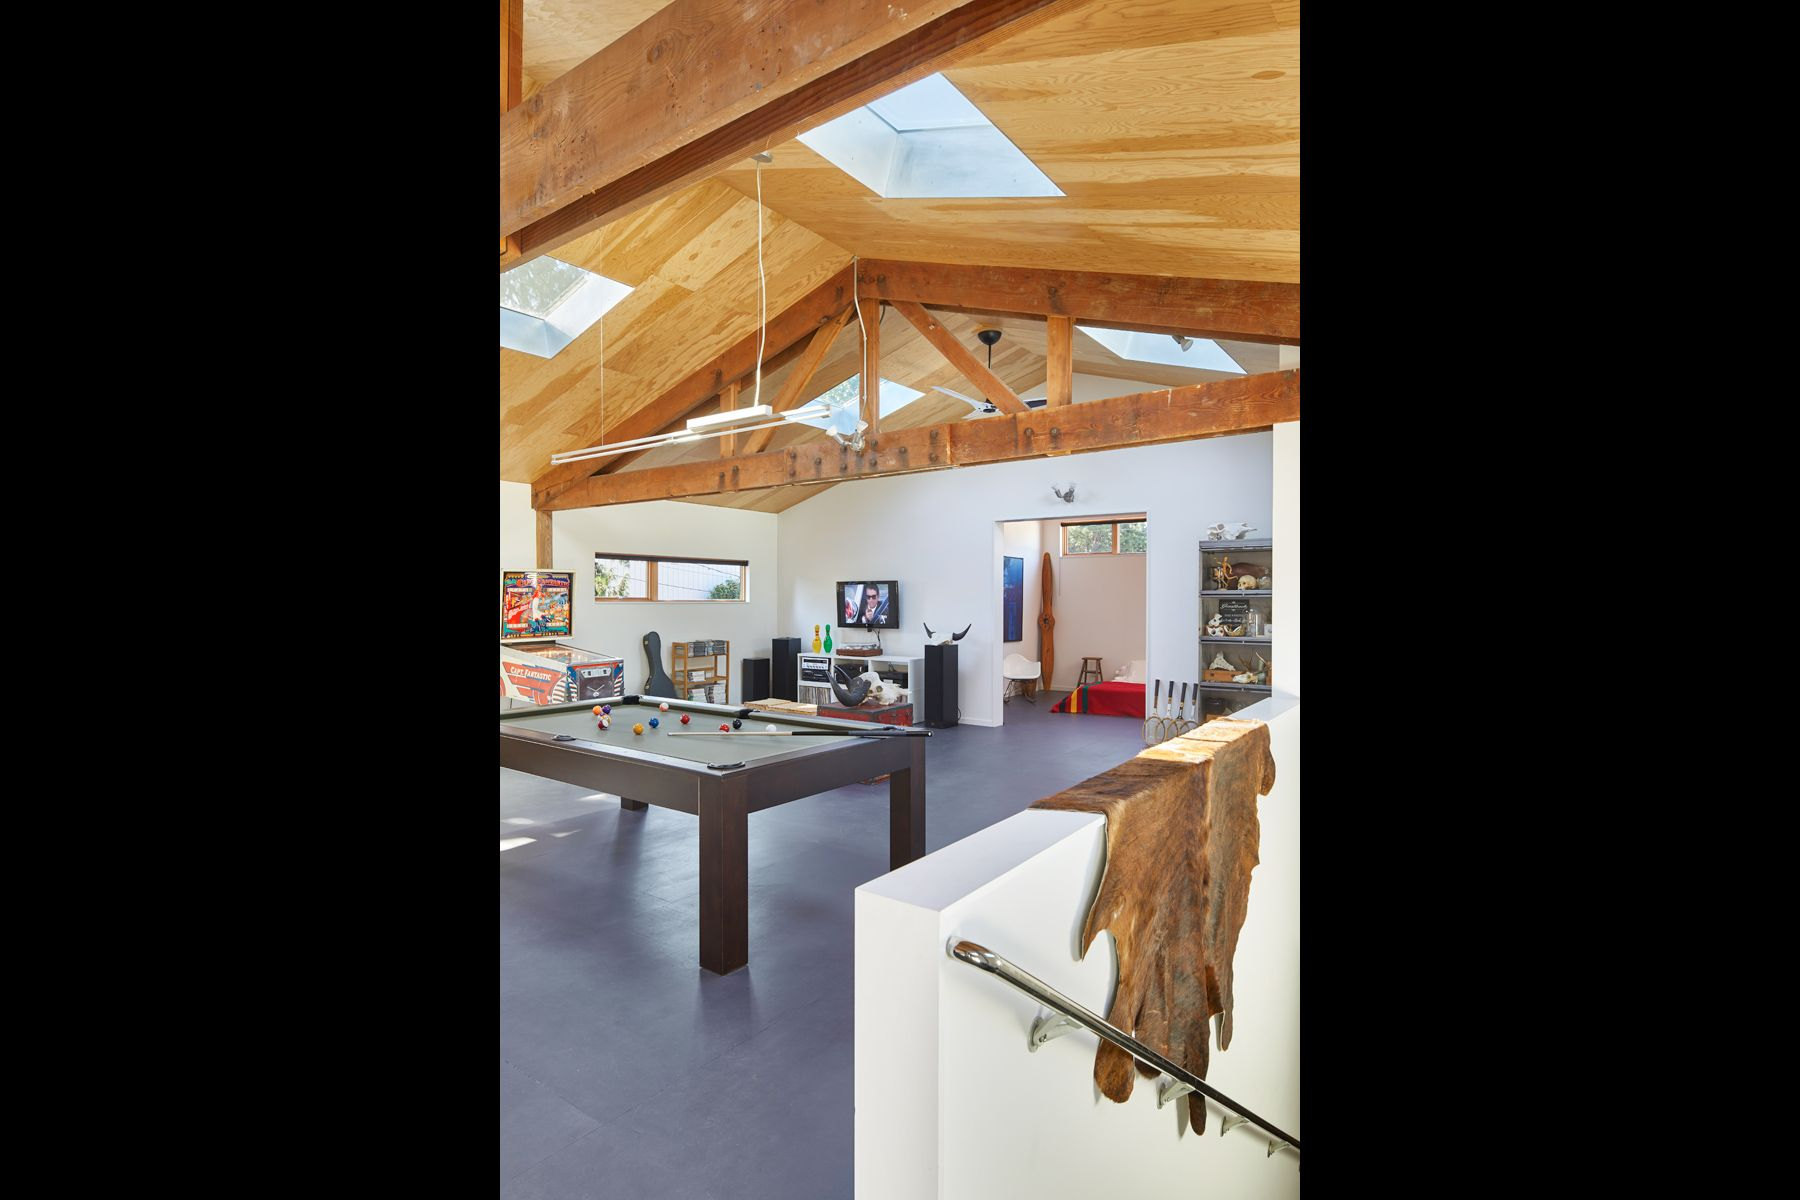 billiards, trusses, plywood, interior design, animal skin